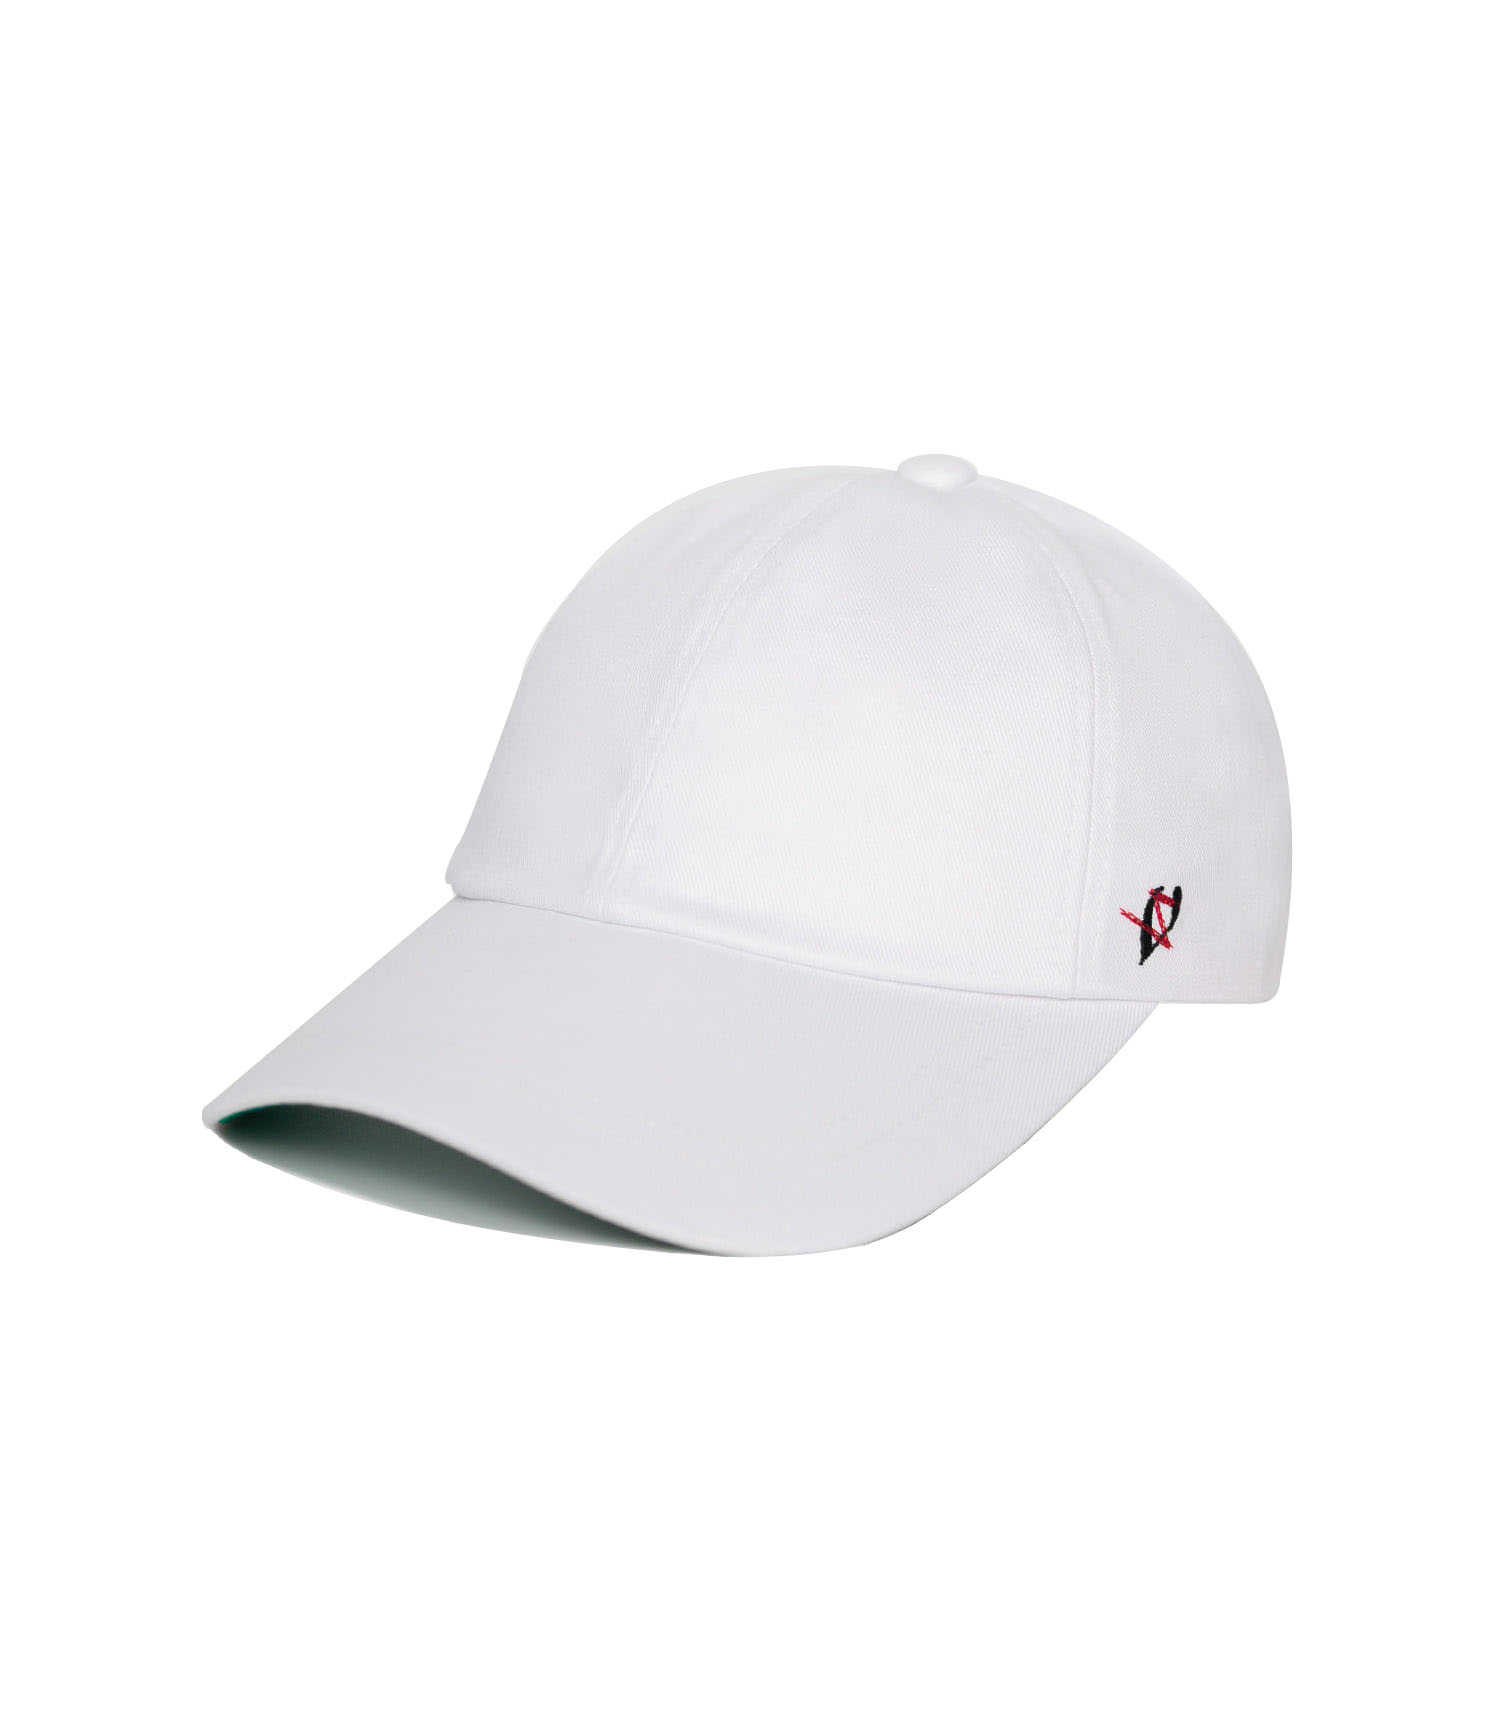 BLACK LINE - SSO FANXY BALL CAP (WHITE)